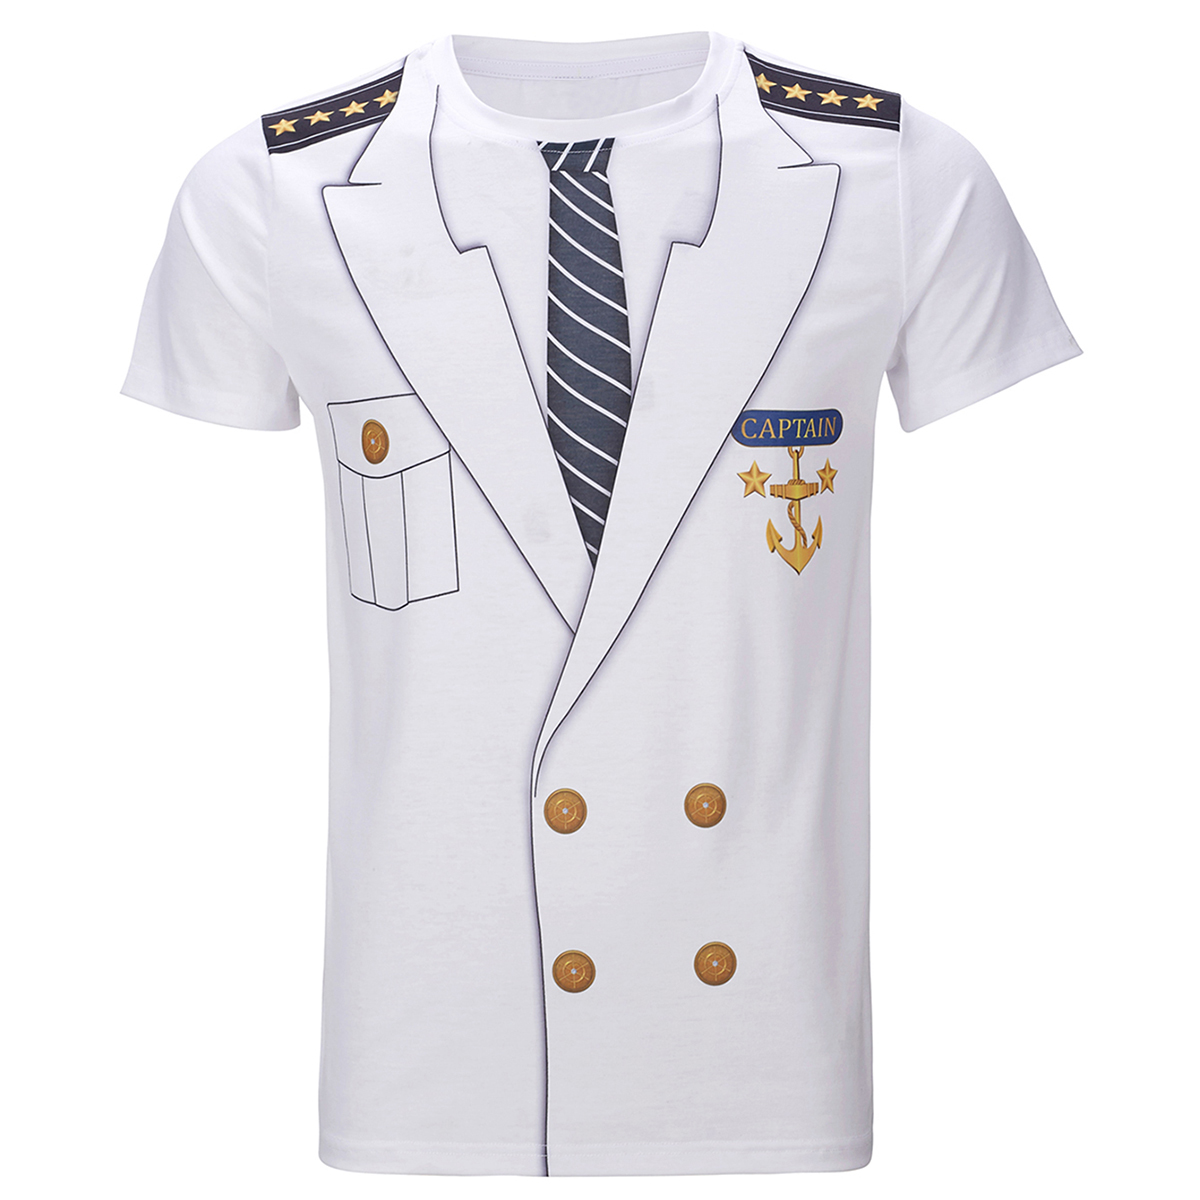 Hommes capitaine Costume T-Shirts drôle Cosplay Halloween Tee adulte homme haut Cowboy Pirate Clown pilote uniforme carnaval 3D grande taille